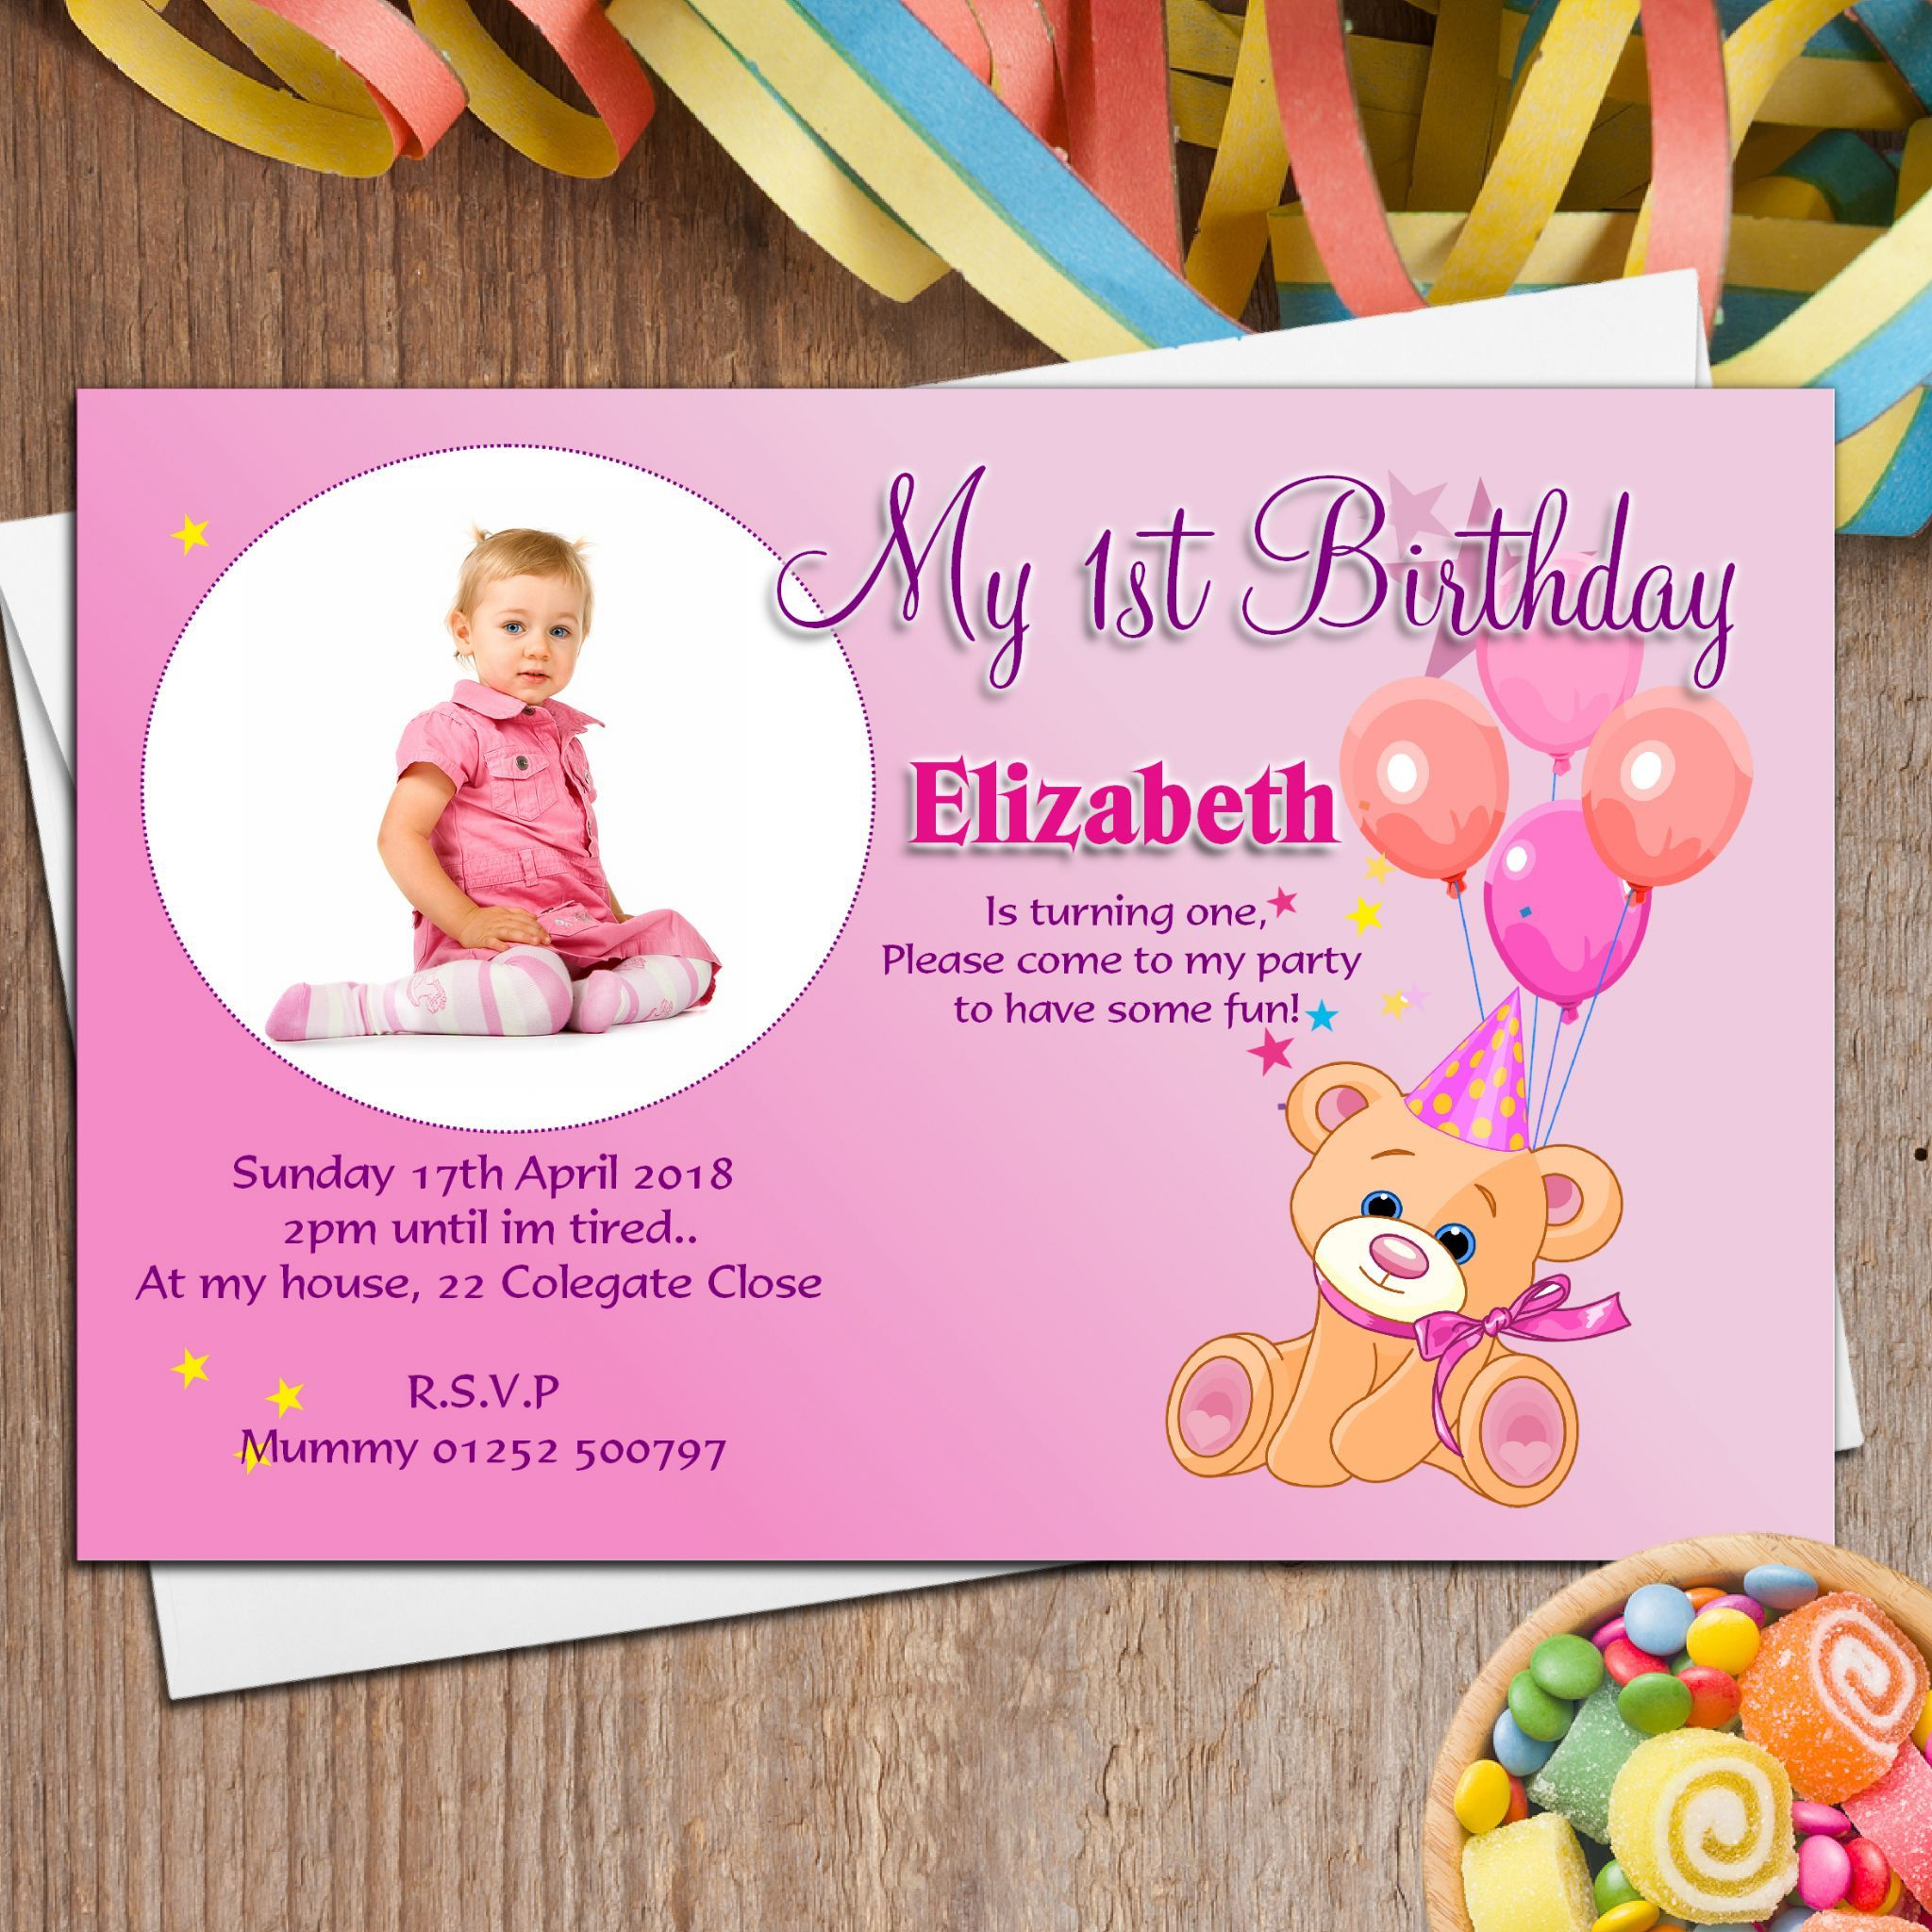 1st birthday invitation cards for baby boy in india dnyaneshwar 1st birthday invitation cards for baby boy in india filmwisefo